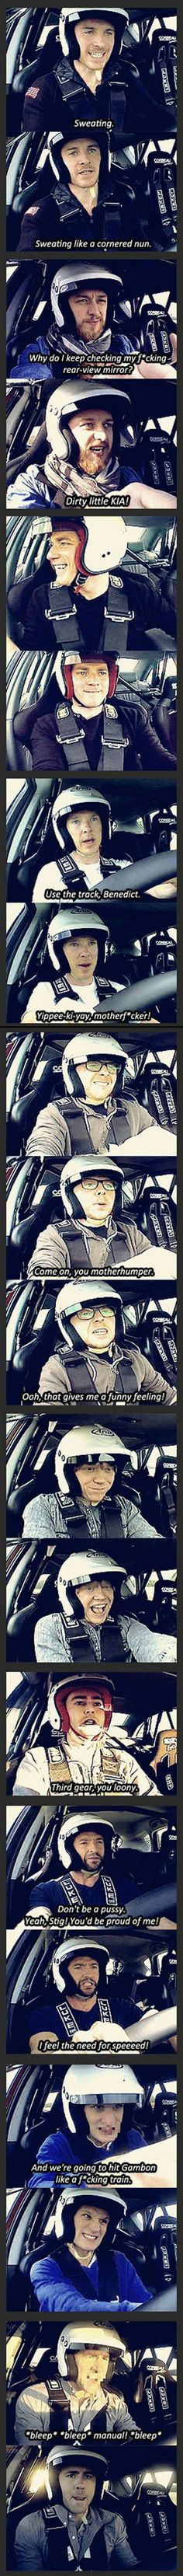 Can Top Gear Tuesday be a thing?